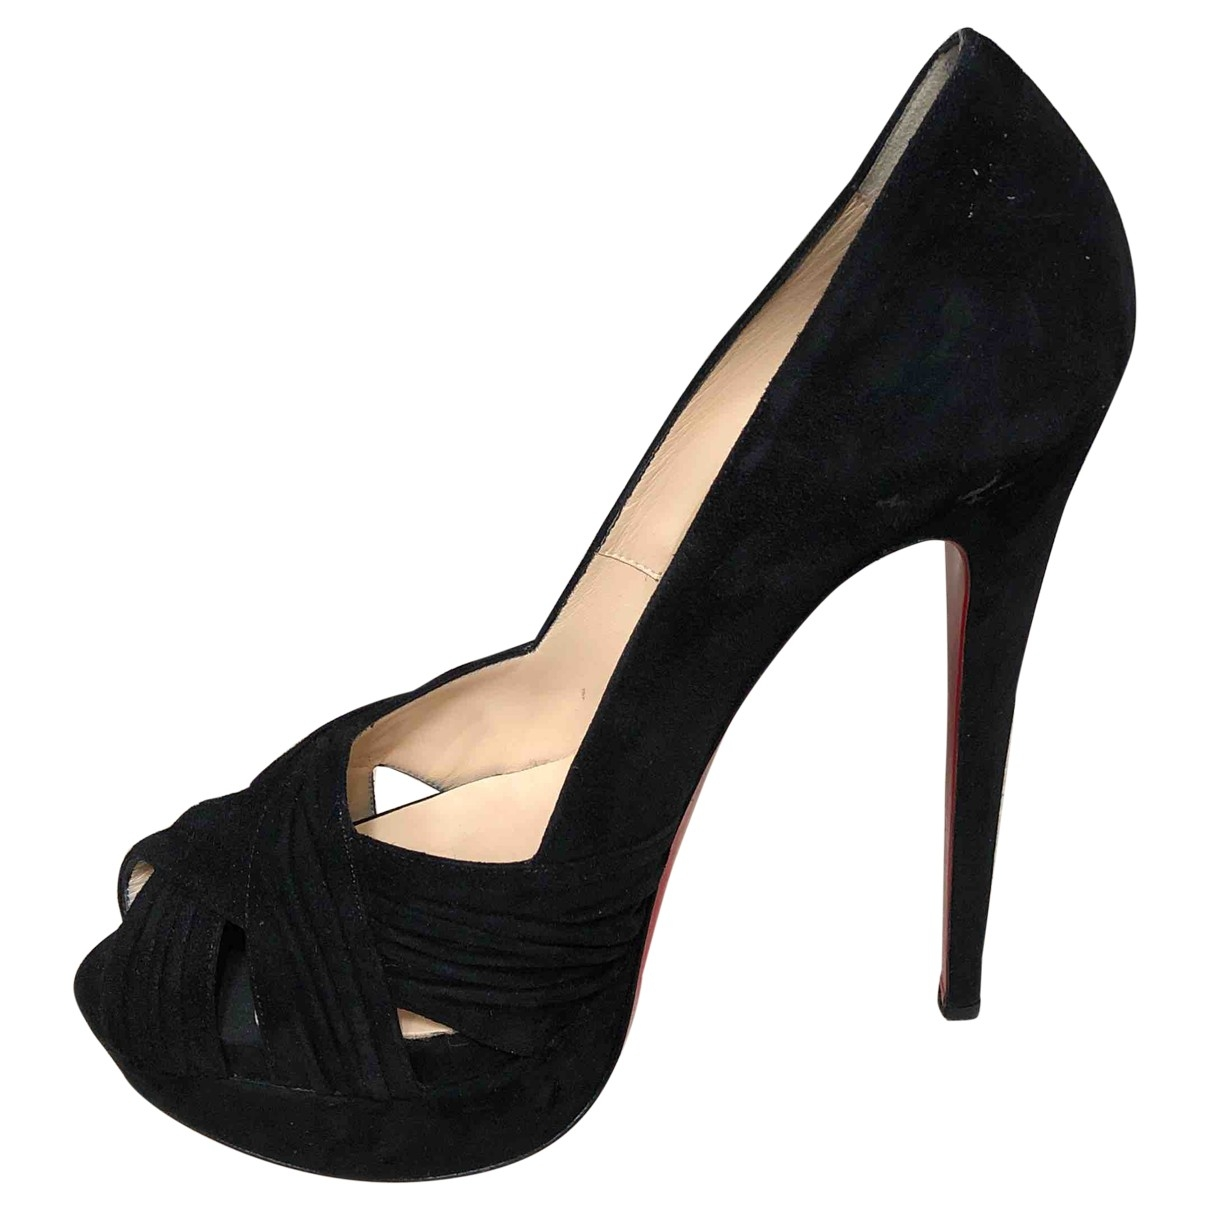 Christian Louboutin Lady Peep Black Suede Heels for Women 39.5 EU